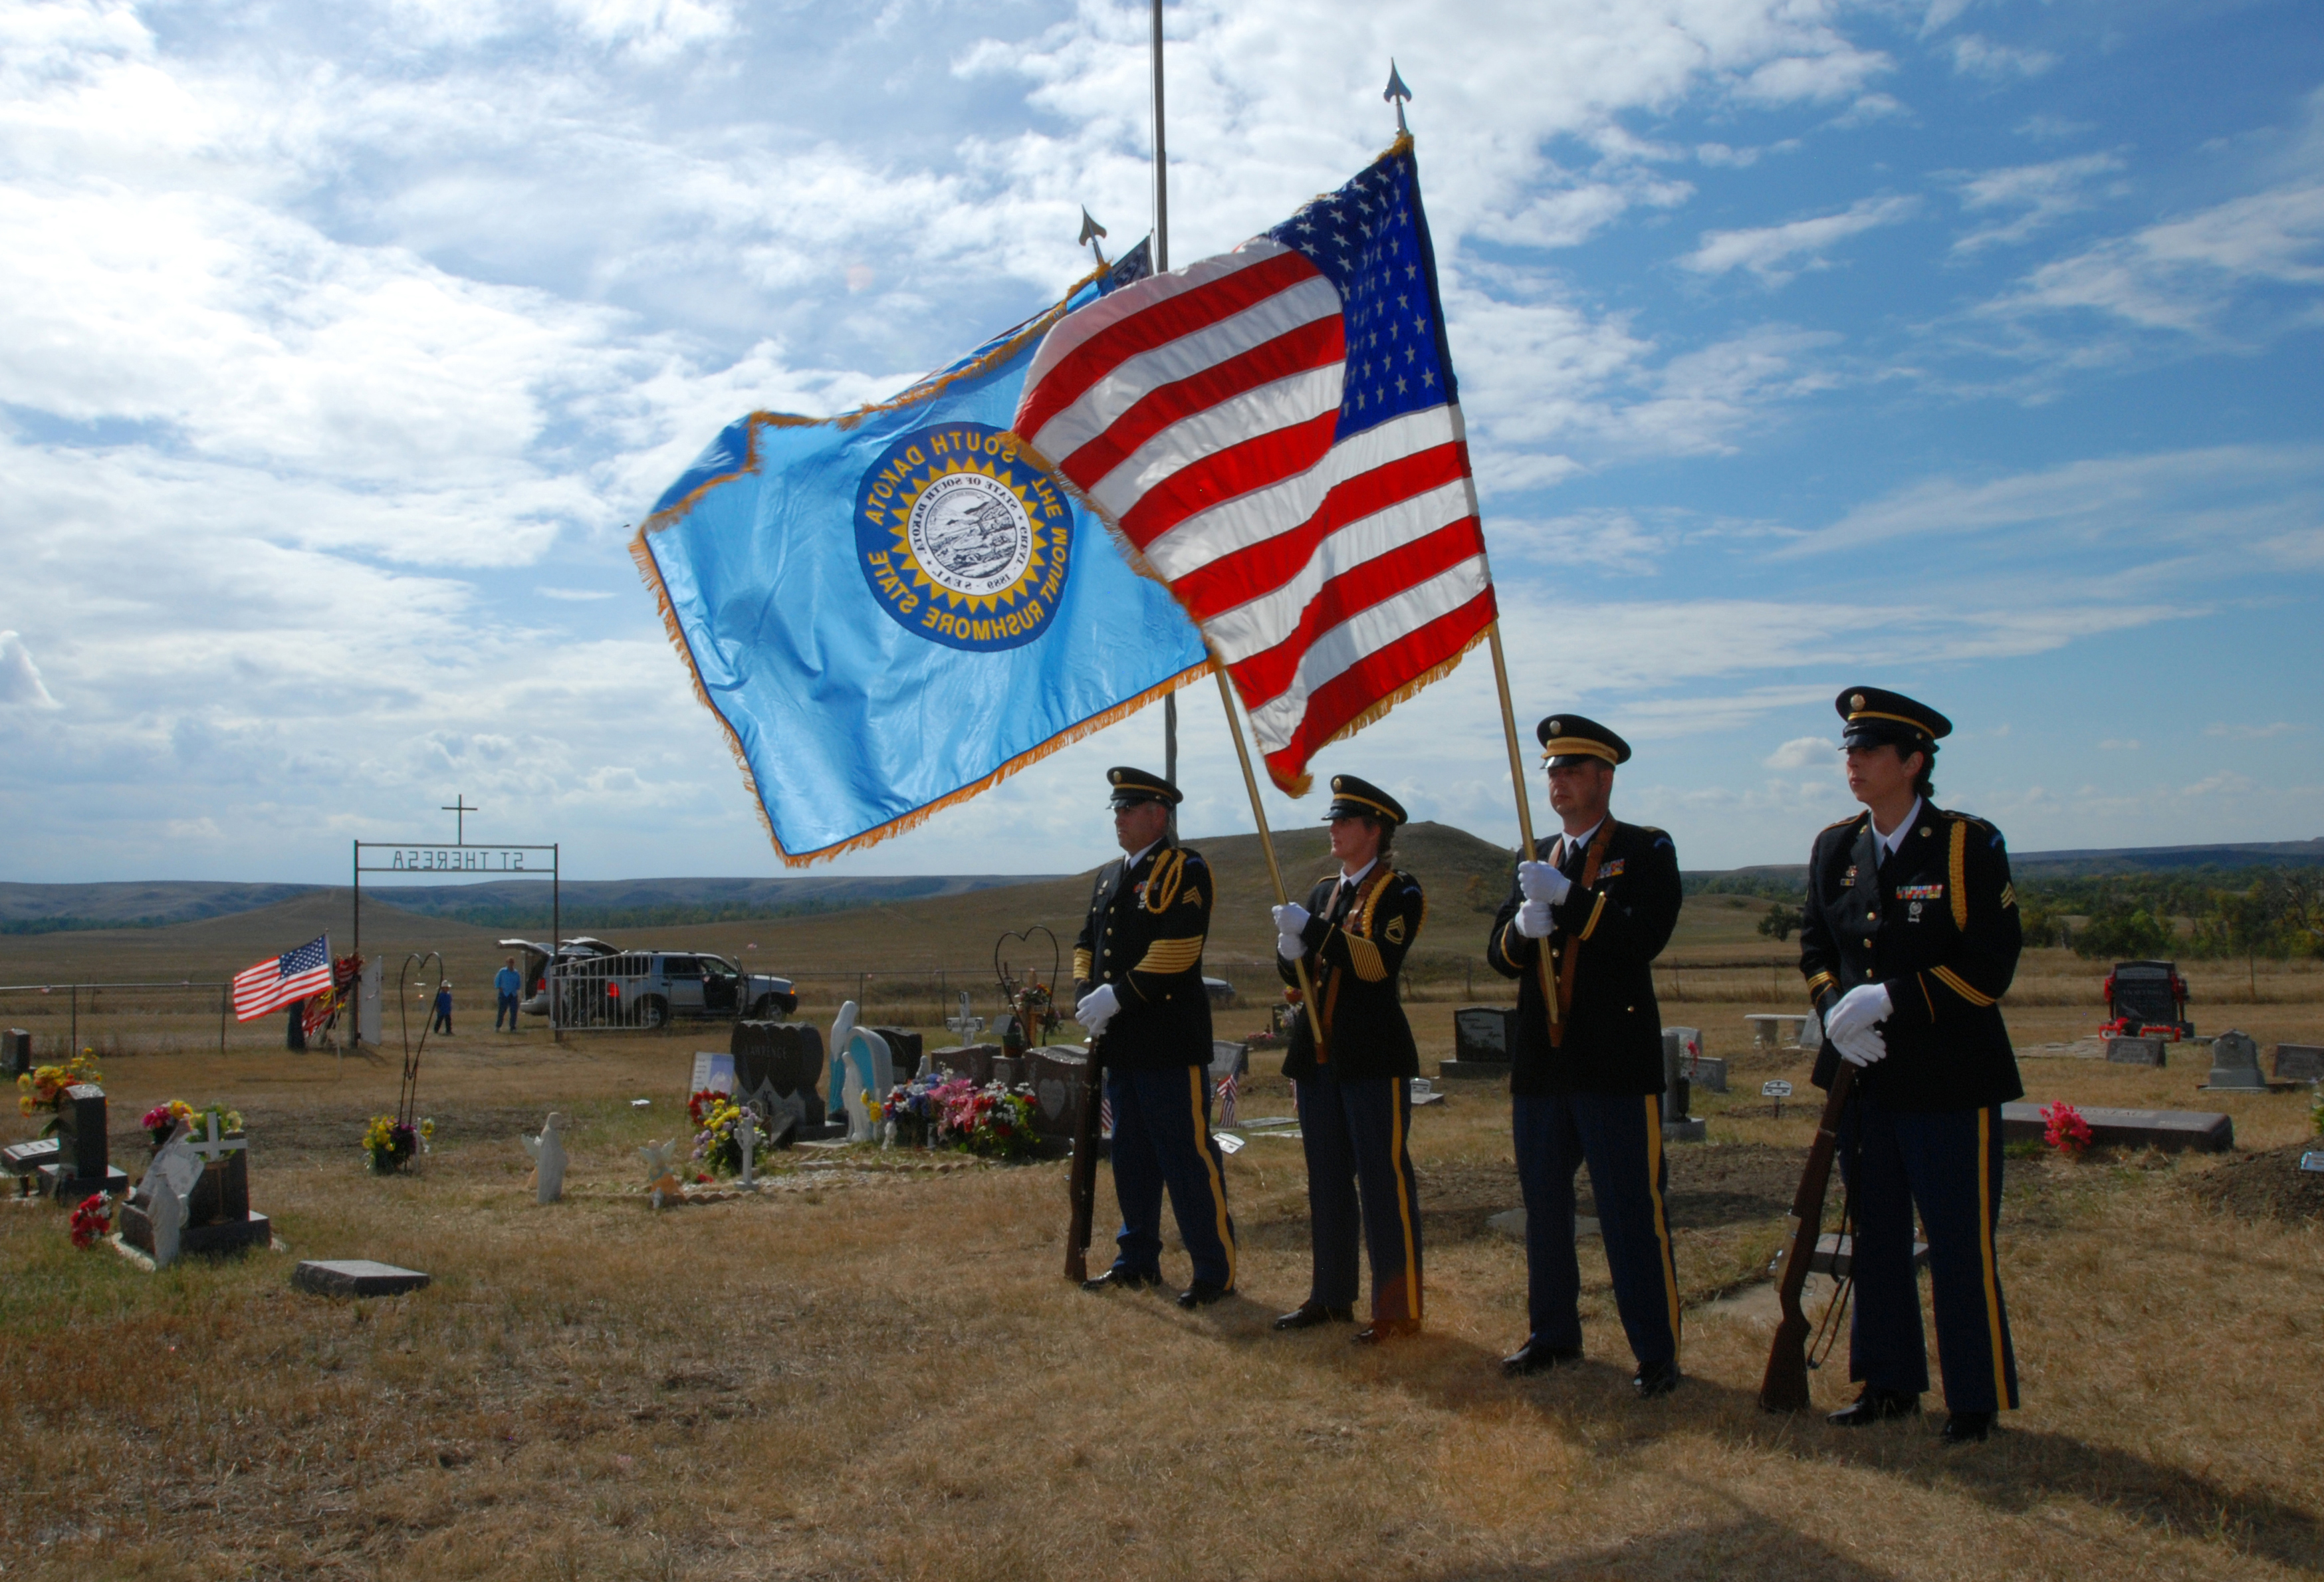 File:US Army 52445 Military Funeral Honors color guard jpg